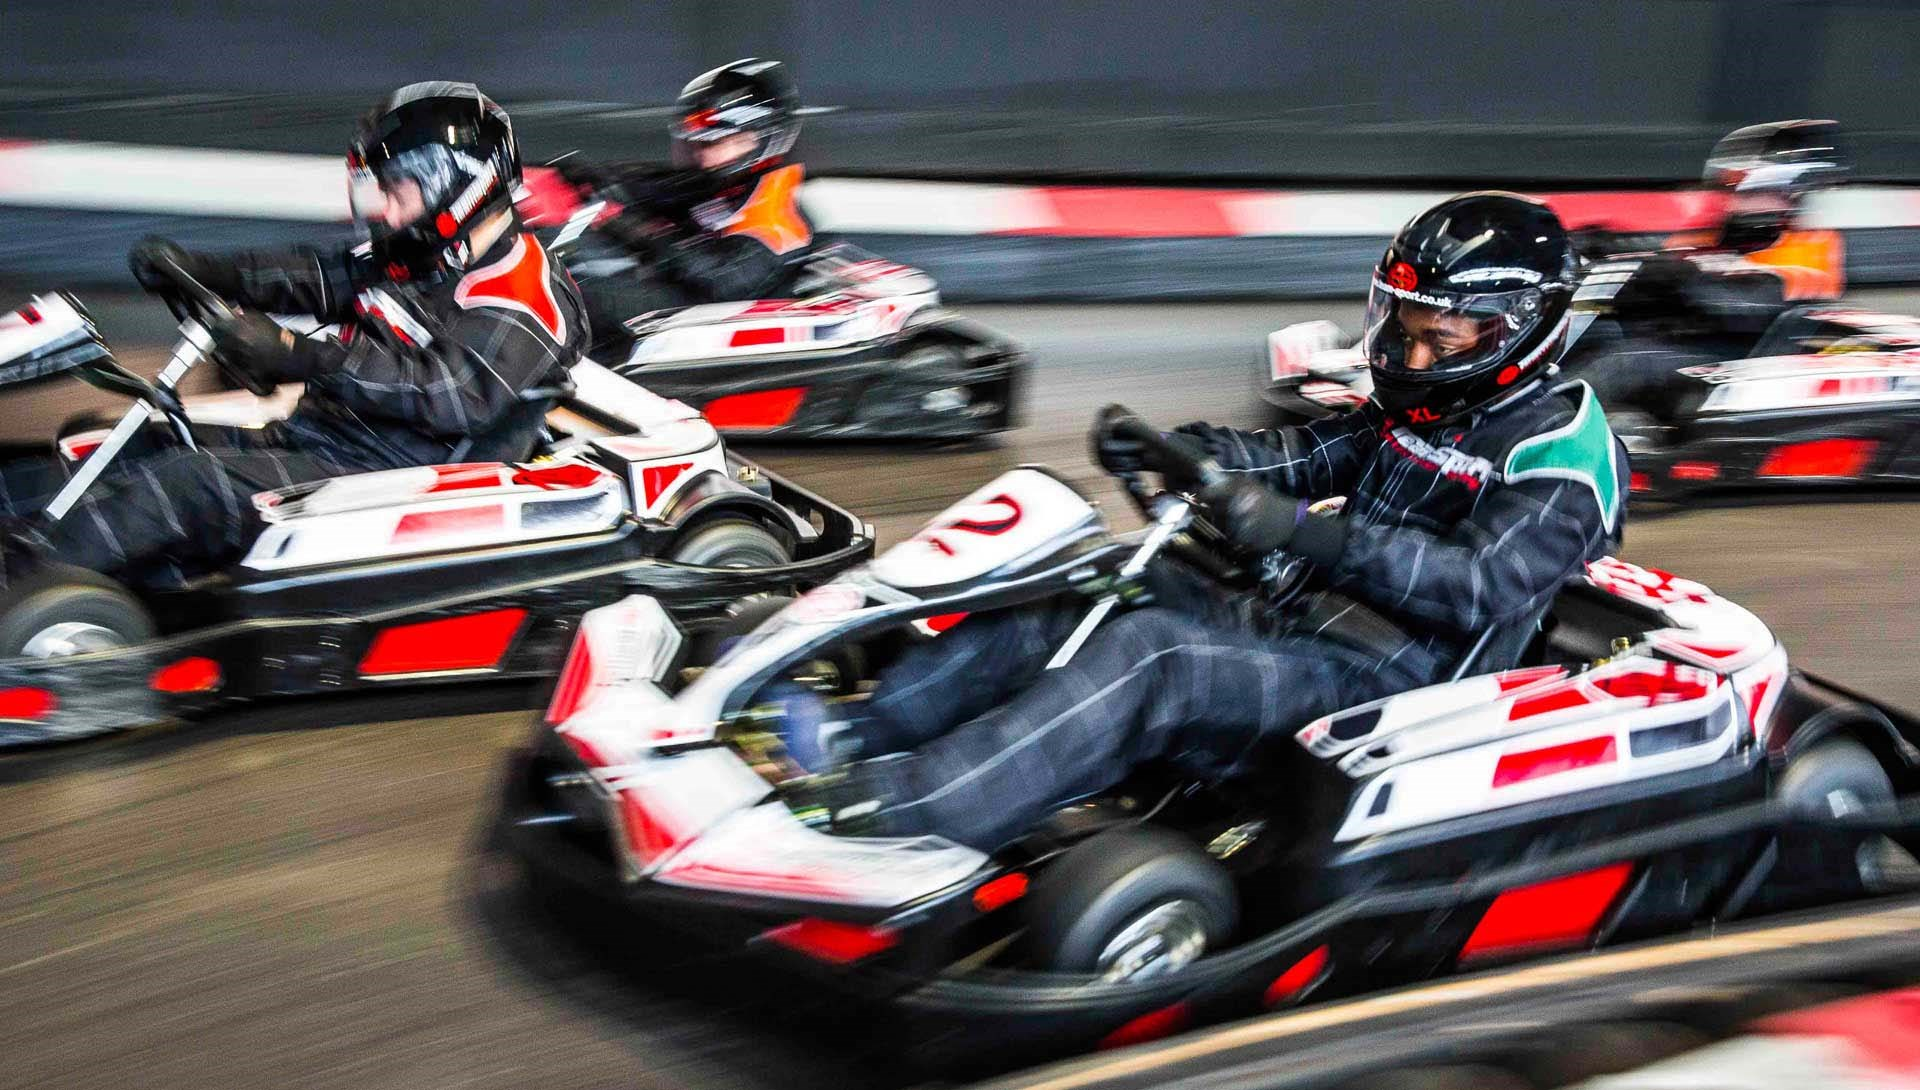 TeamSport_Gallery_Go_Karting_New_Track_1920x1090-min_2.jpg